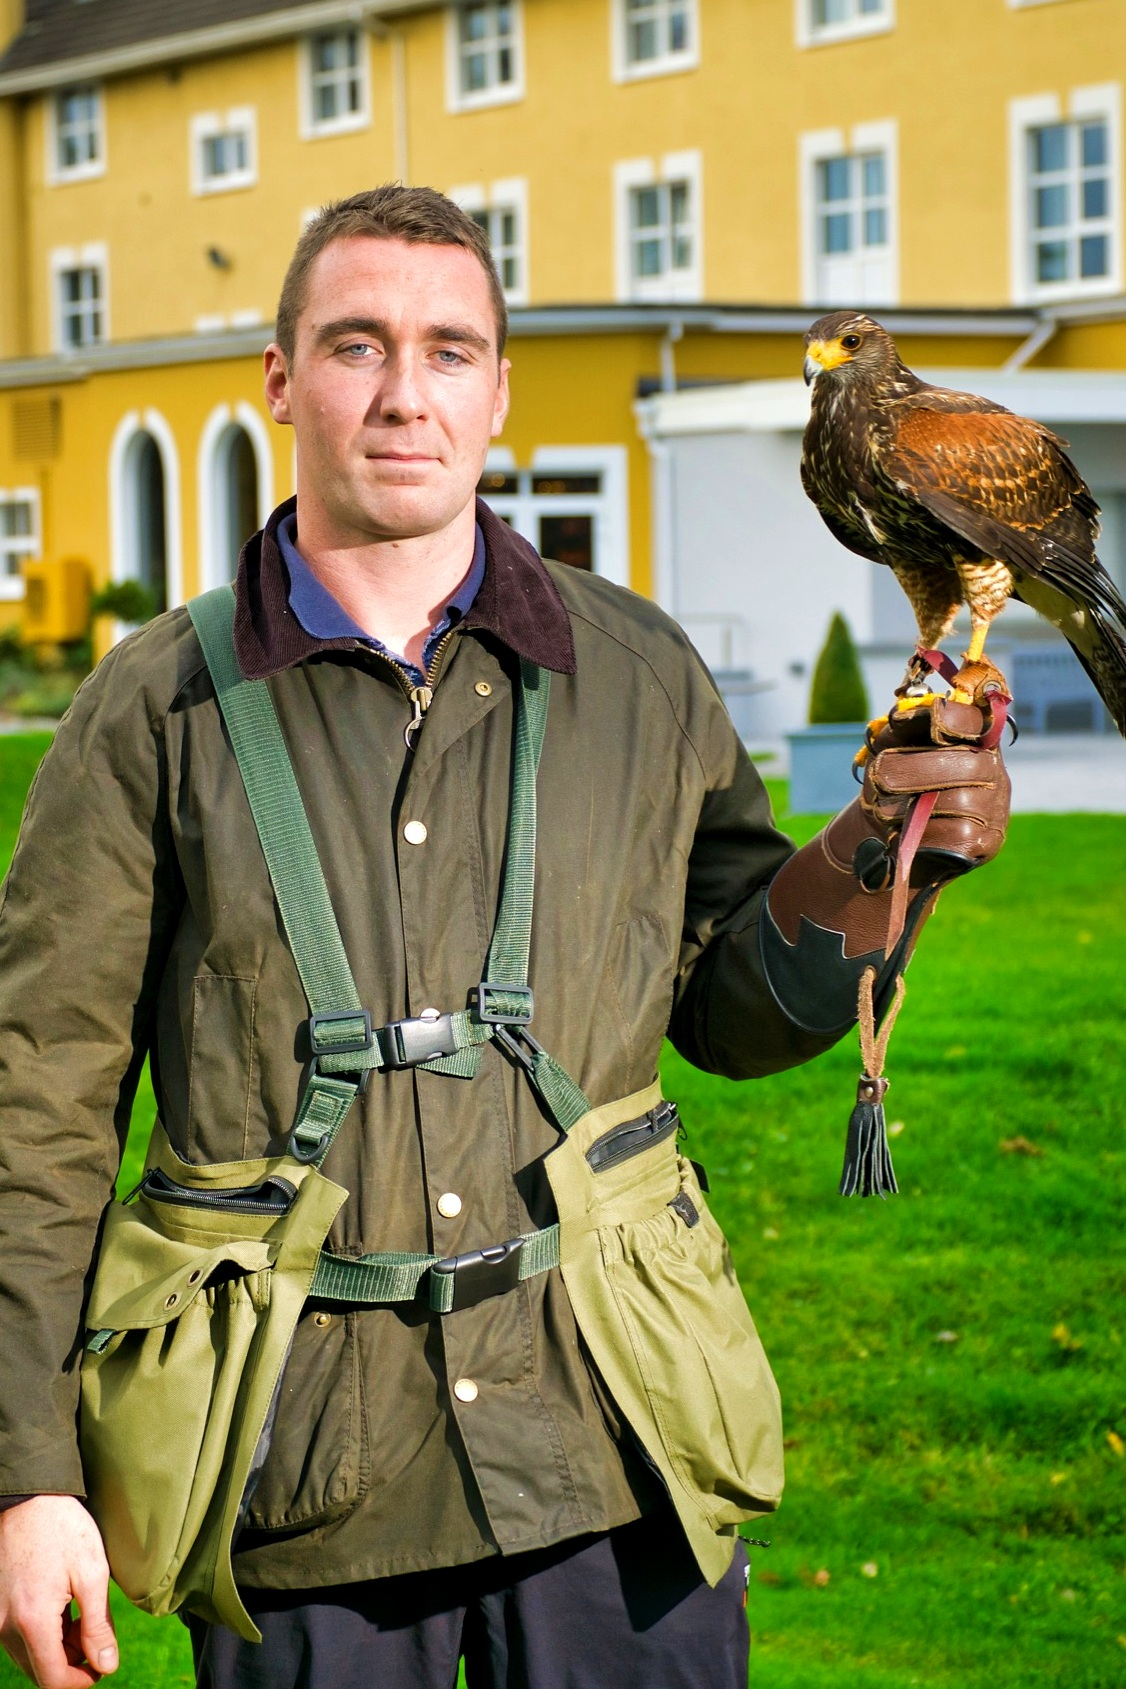 Hawk Walks - An exclusive private hawk walk (with owl encounter) is an opportunity to get to be a falconer for a day. This is a unique and fantastic experience that can be enjoyed by everybody. Whether you are an outdoors person/naturalist or more of an indoors person who only occasionly feels drawn to the natural world, you will be enthralled by the experience of having a close encounter with these magnificent birds.No prior falconry experience is necessary. It involves a leisurely stroll, through the meadows of a working farm, with Killarney's famous mountain range visible in the background. We are situated just outside Killarney town. A hawk walk is family friendly and suitable for all ages and fitness levels.Initially you will be introduced to the hawk or hawks and as soon as you are comfortable, you can cast it free from your hand, with the assistance of your own personal guide.Bond with a free flying hawk as he/she comes swooping from the old Irish oak trees to alight on your hand at your command. After the walk has finished, some of our friendly owls can be handled and fed (owls are the most original photobombers!) .